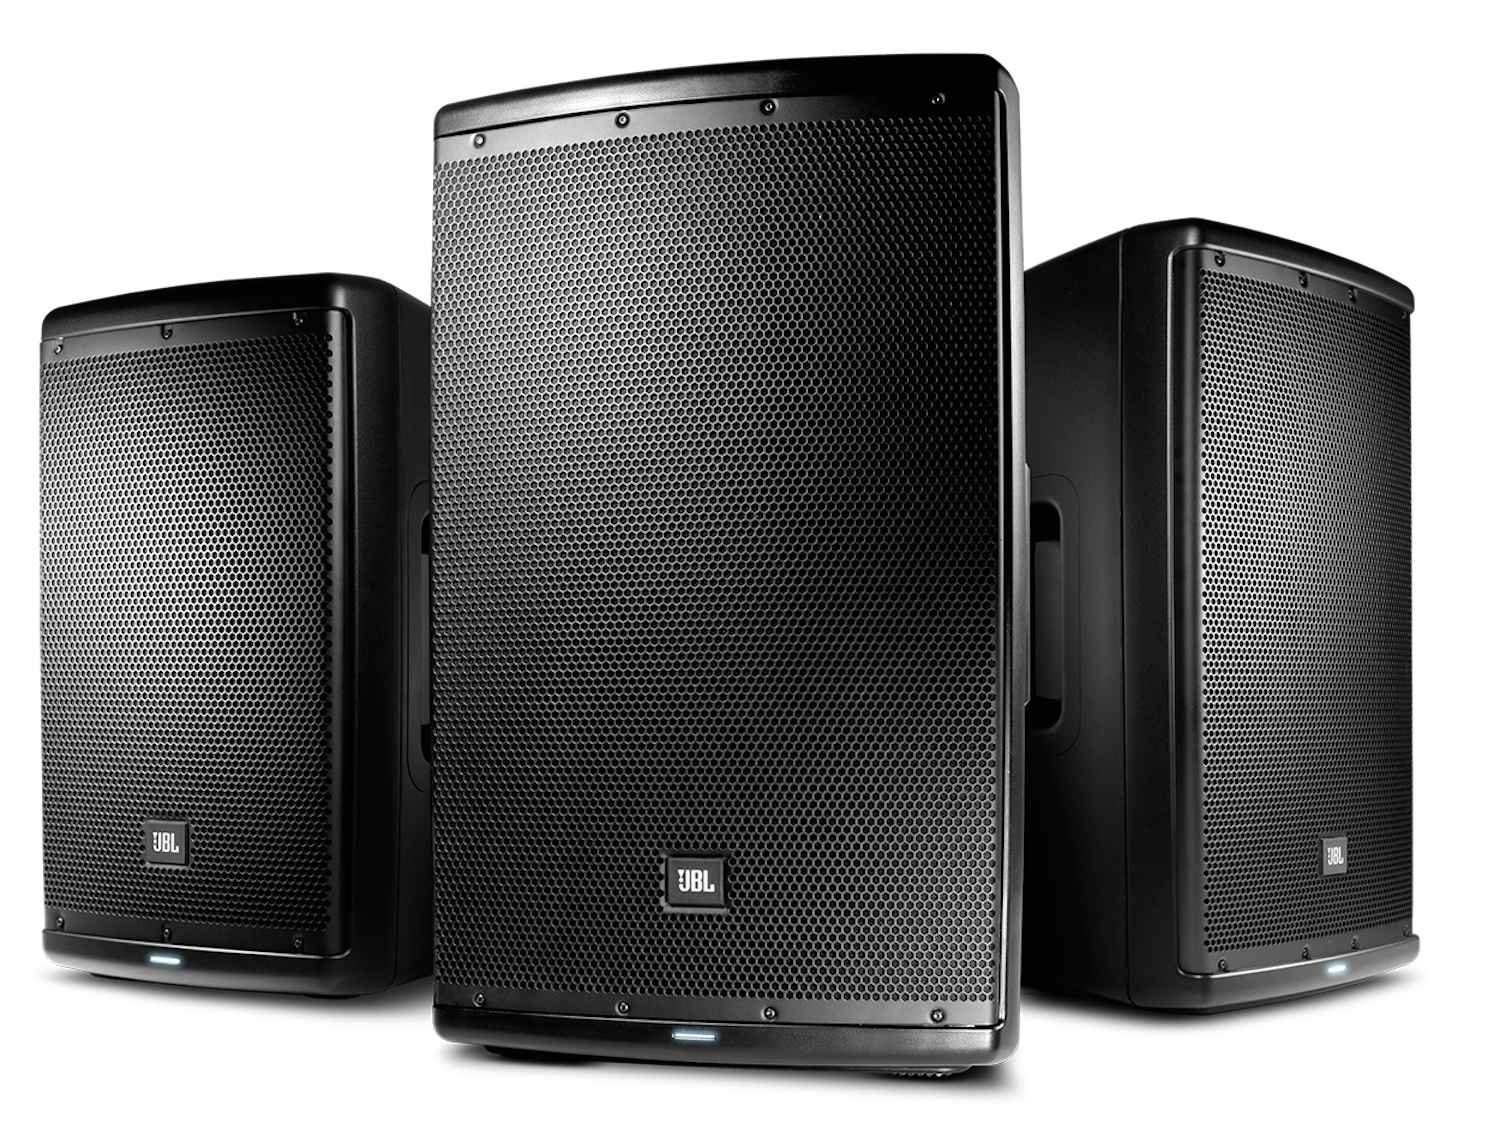 jbl professional expands eon600 portable pa series. Black Bedroom Furniture Sets. Home Design Ideas